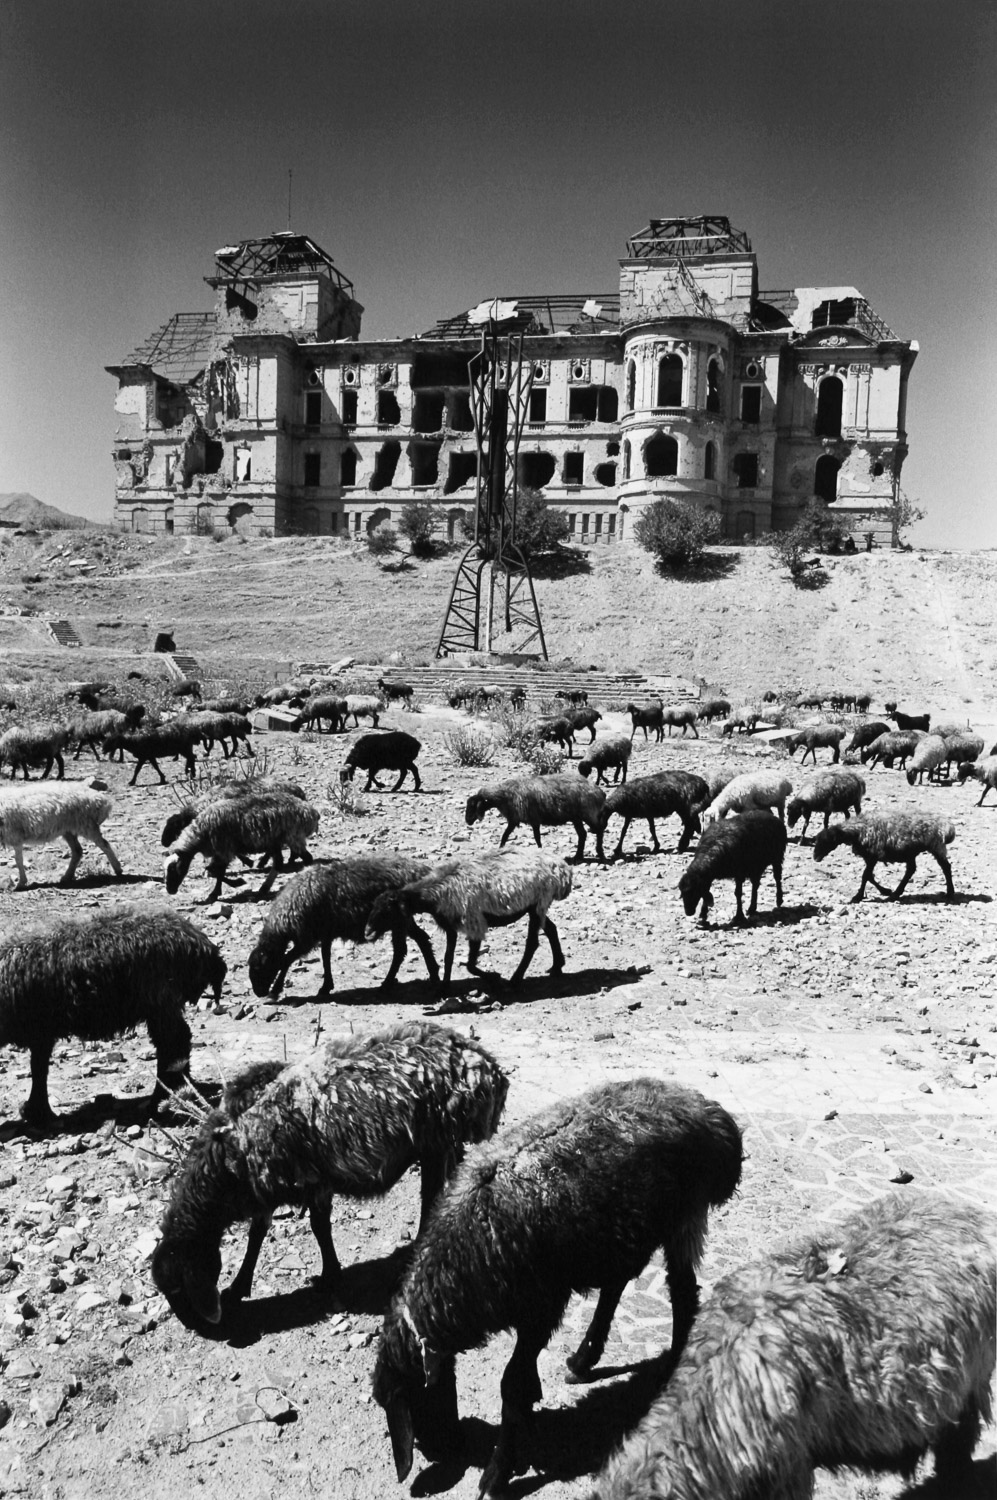 Sheep, King's Palace